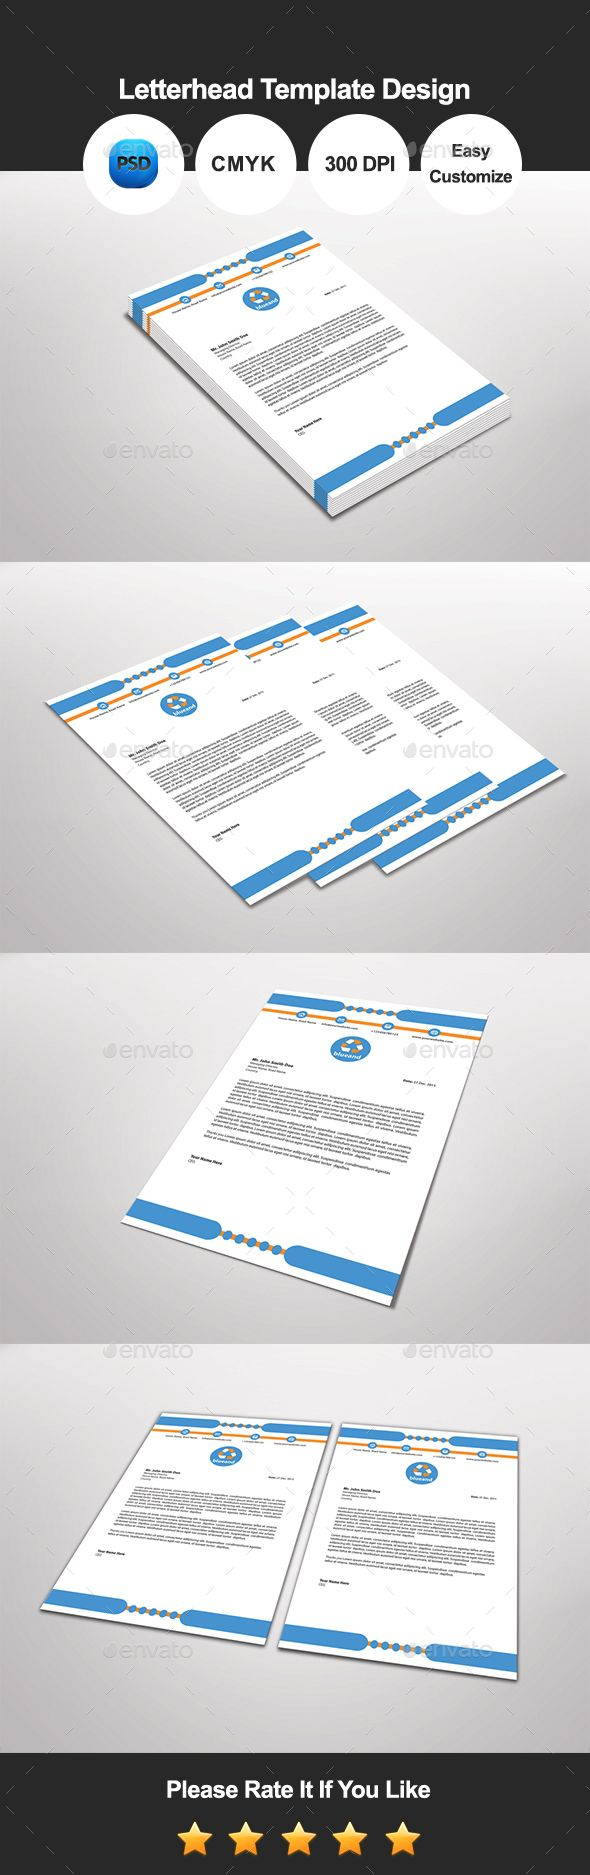 #Blue and #Letterhead #Template Design - Proposals & Invoices #Stationery Download here: https://graphicriver.net/item/blue-and-letterhead-template-design/13493996?ref=alena994